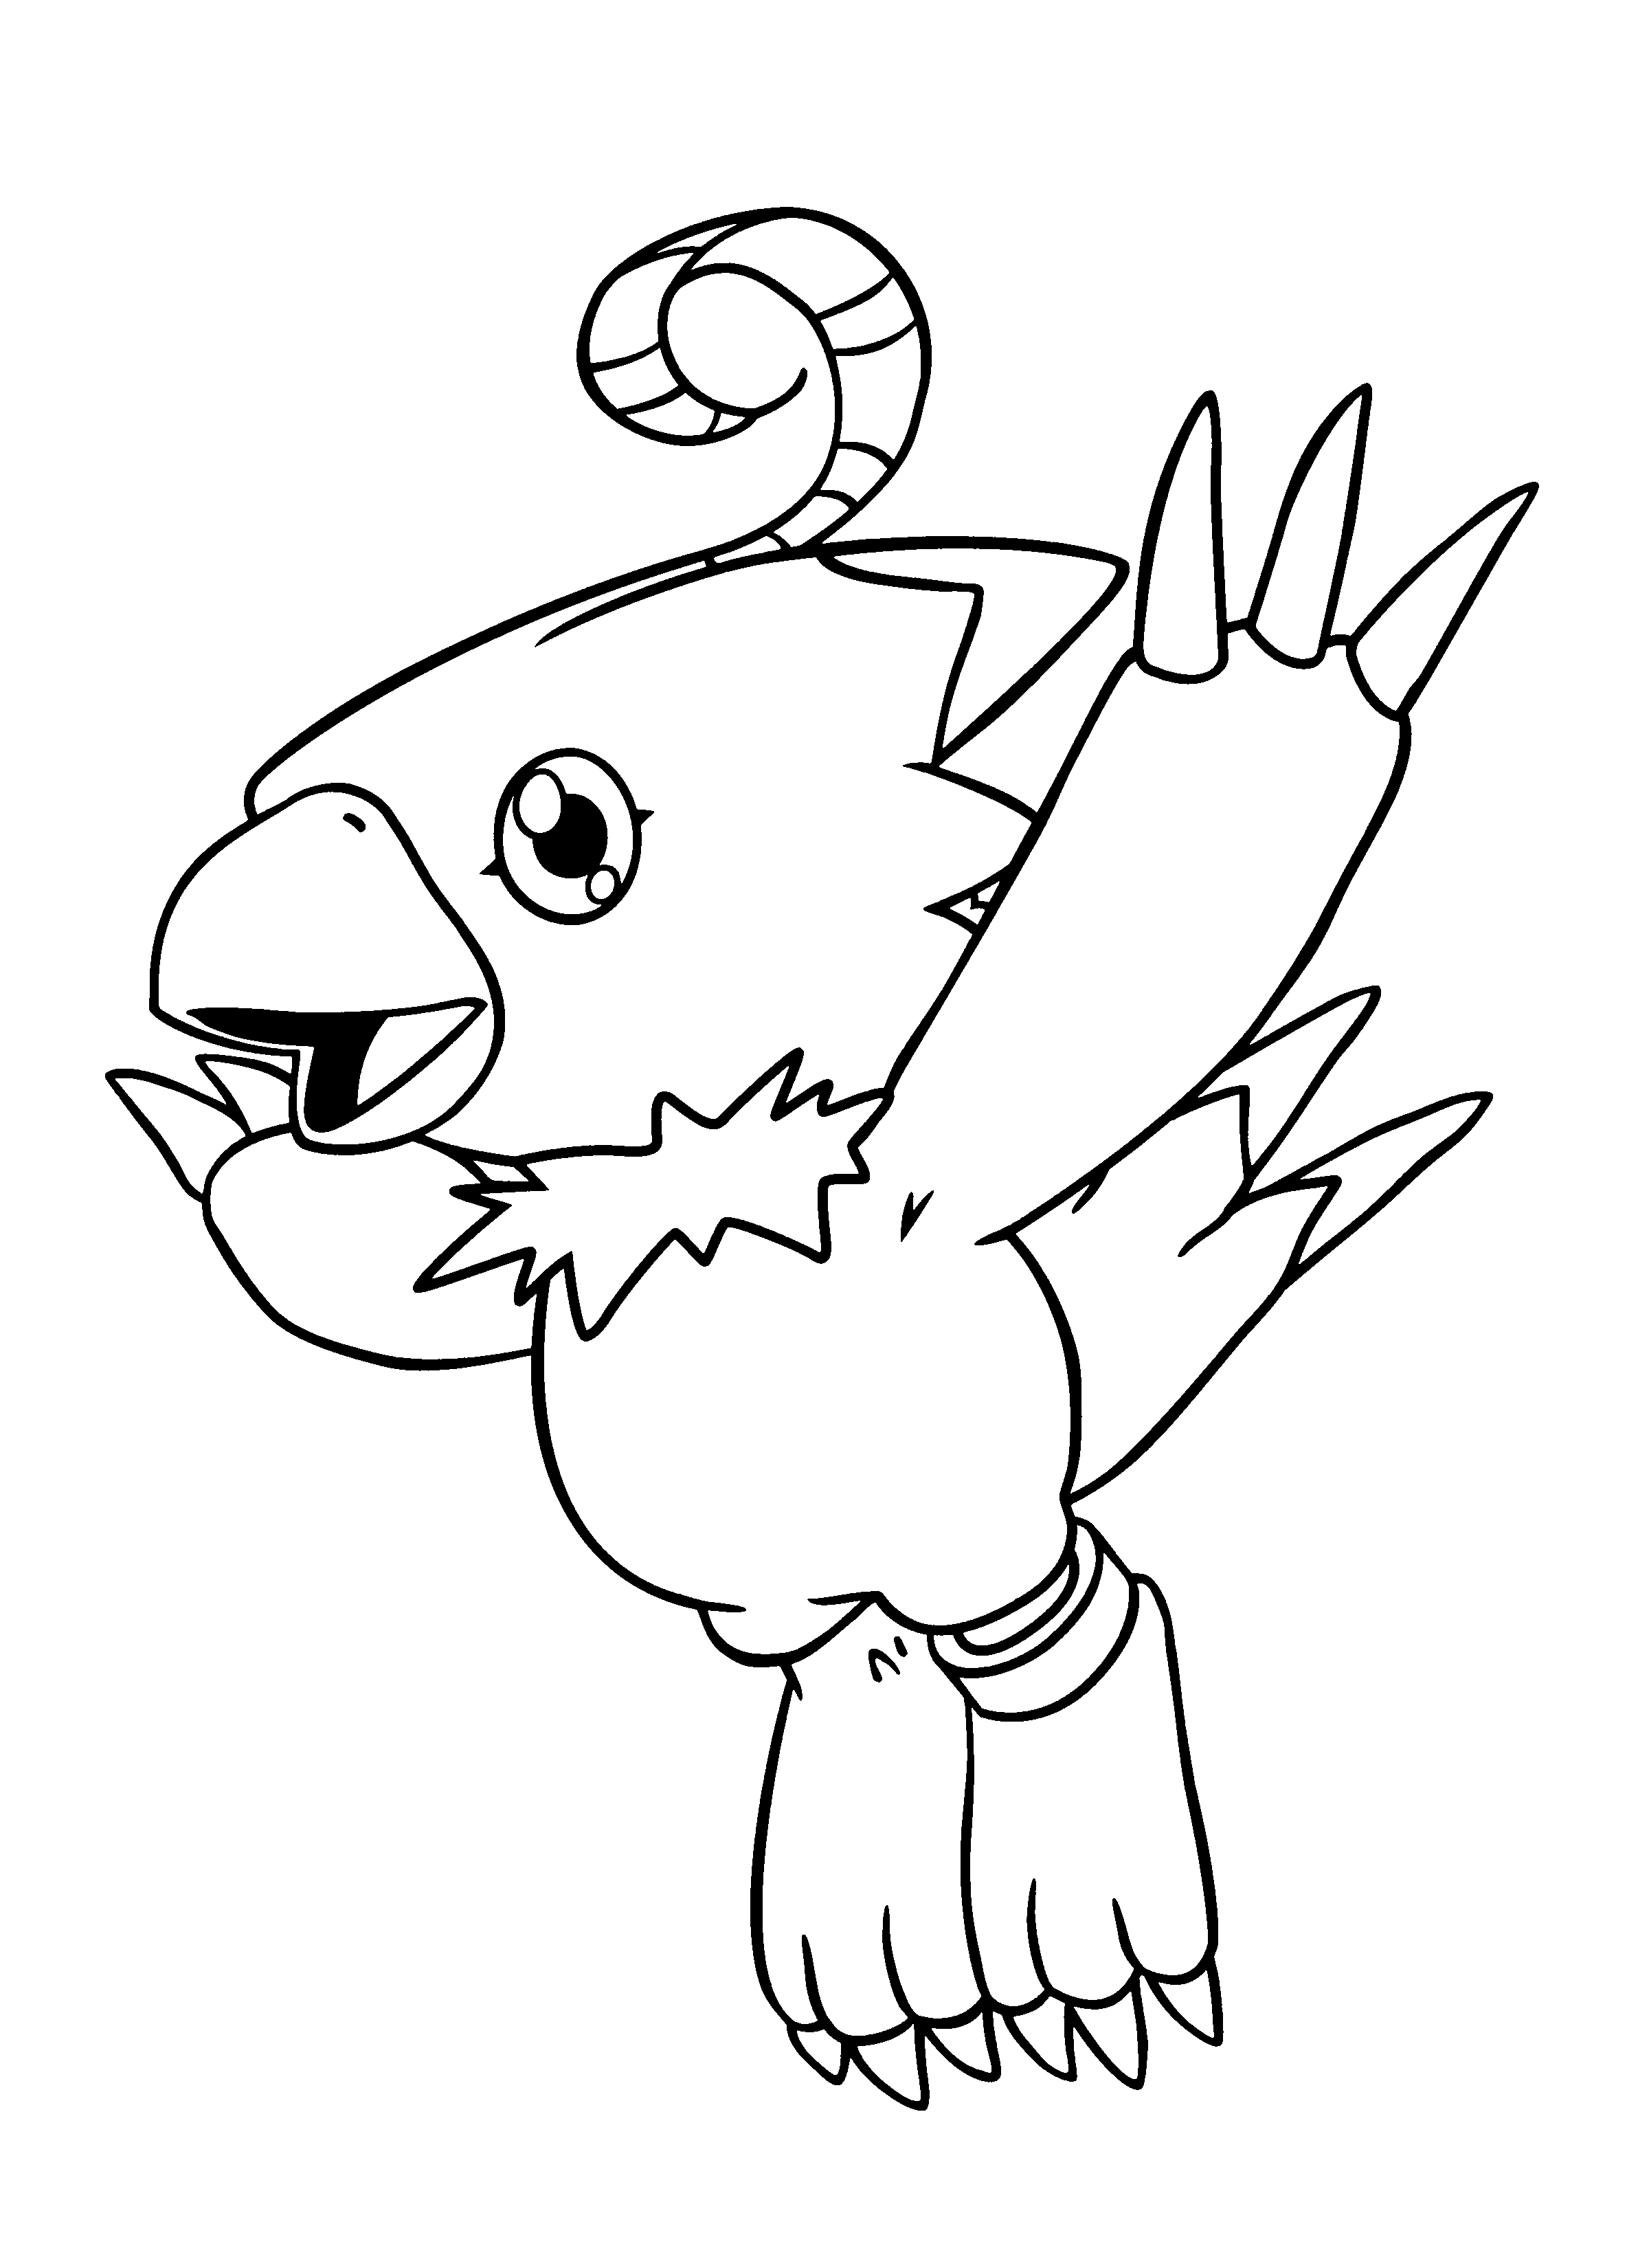 2400x3300 Fortune Digimon Colouring Pages Proven Colorin